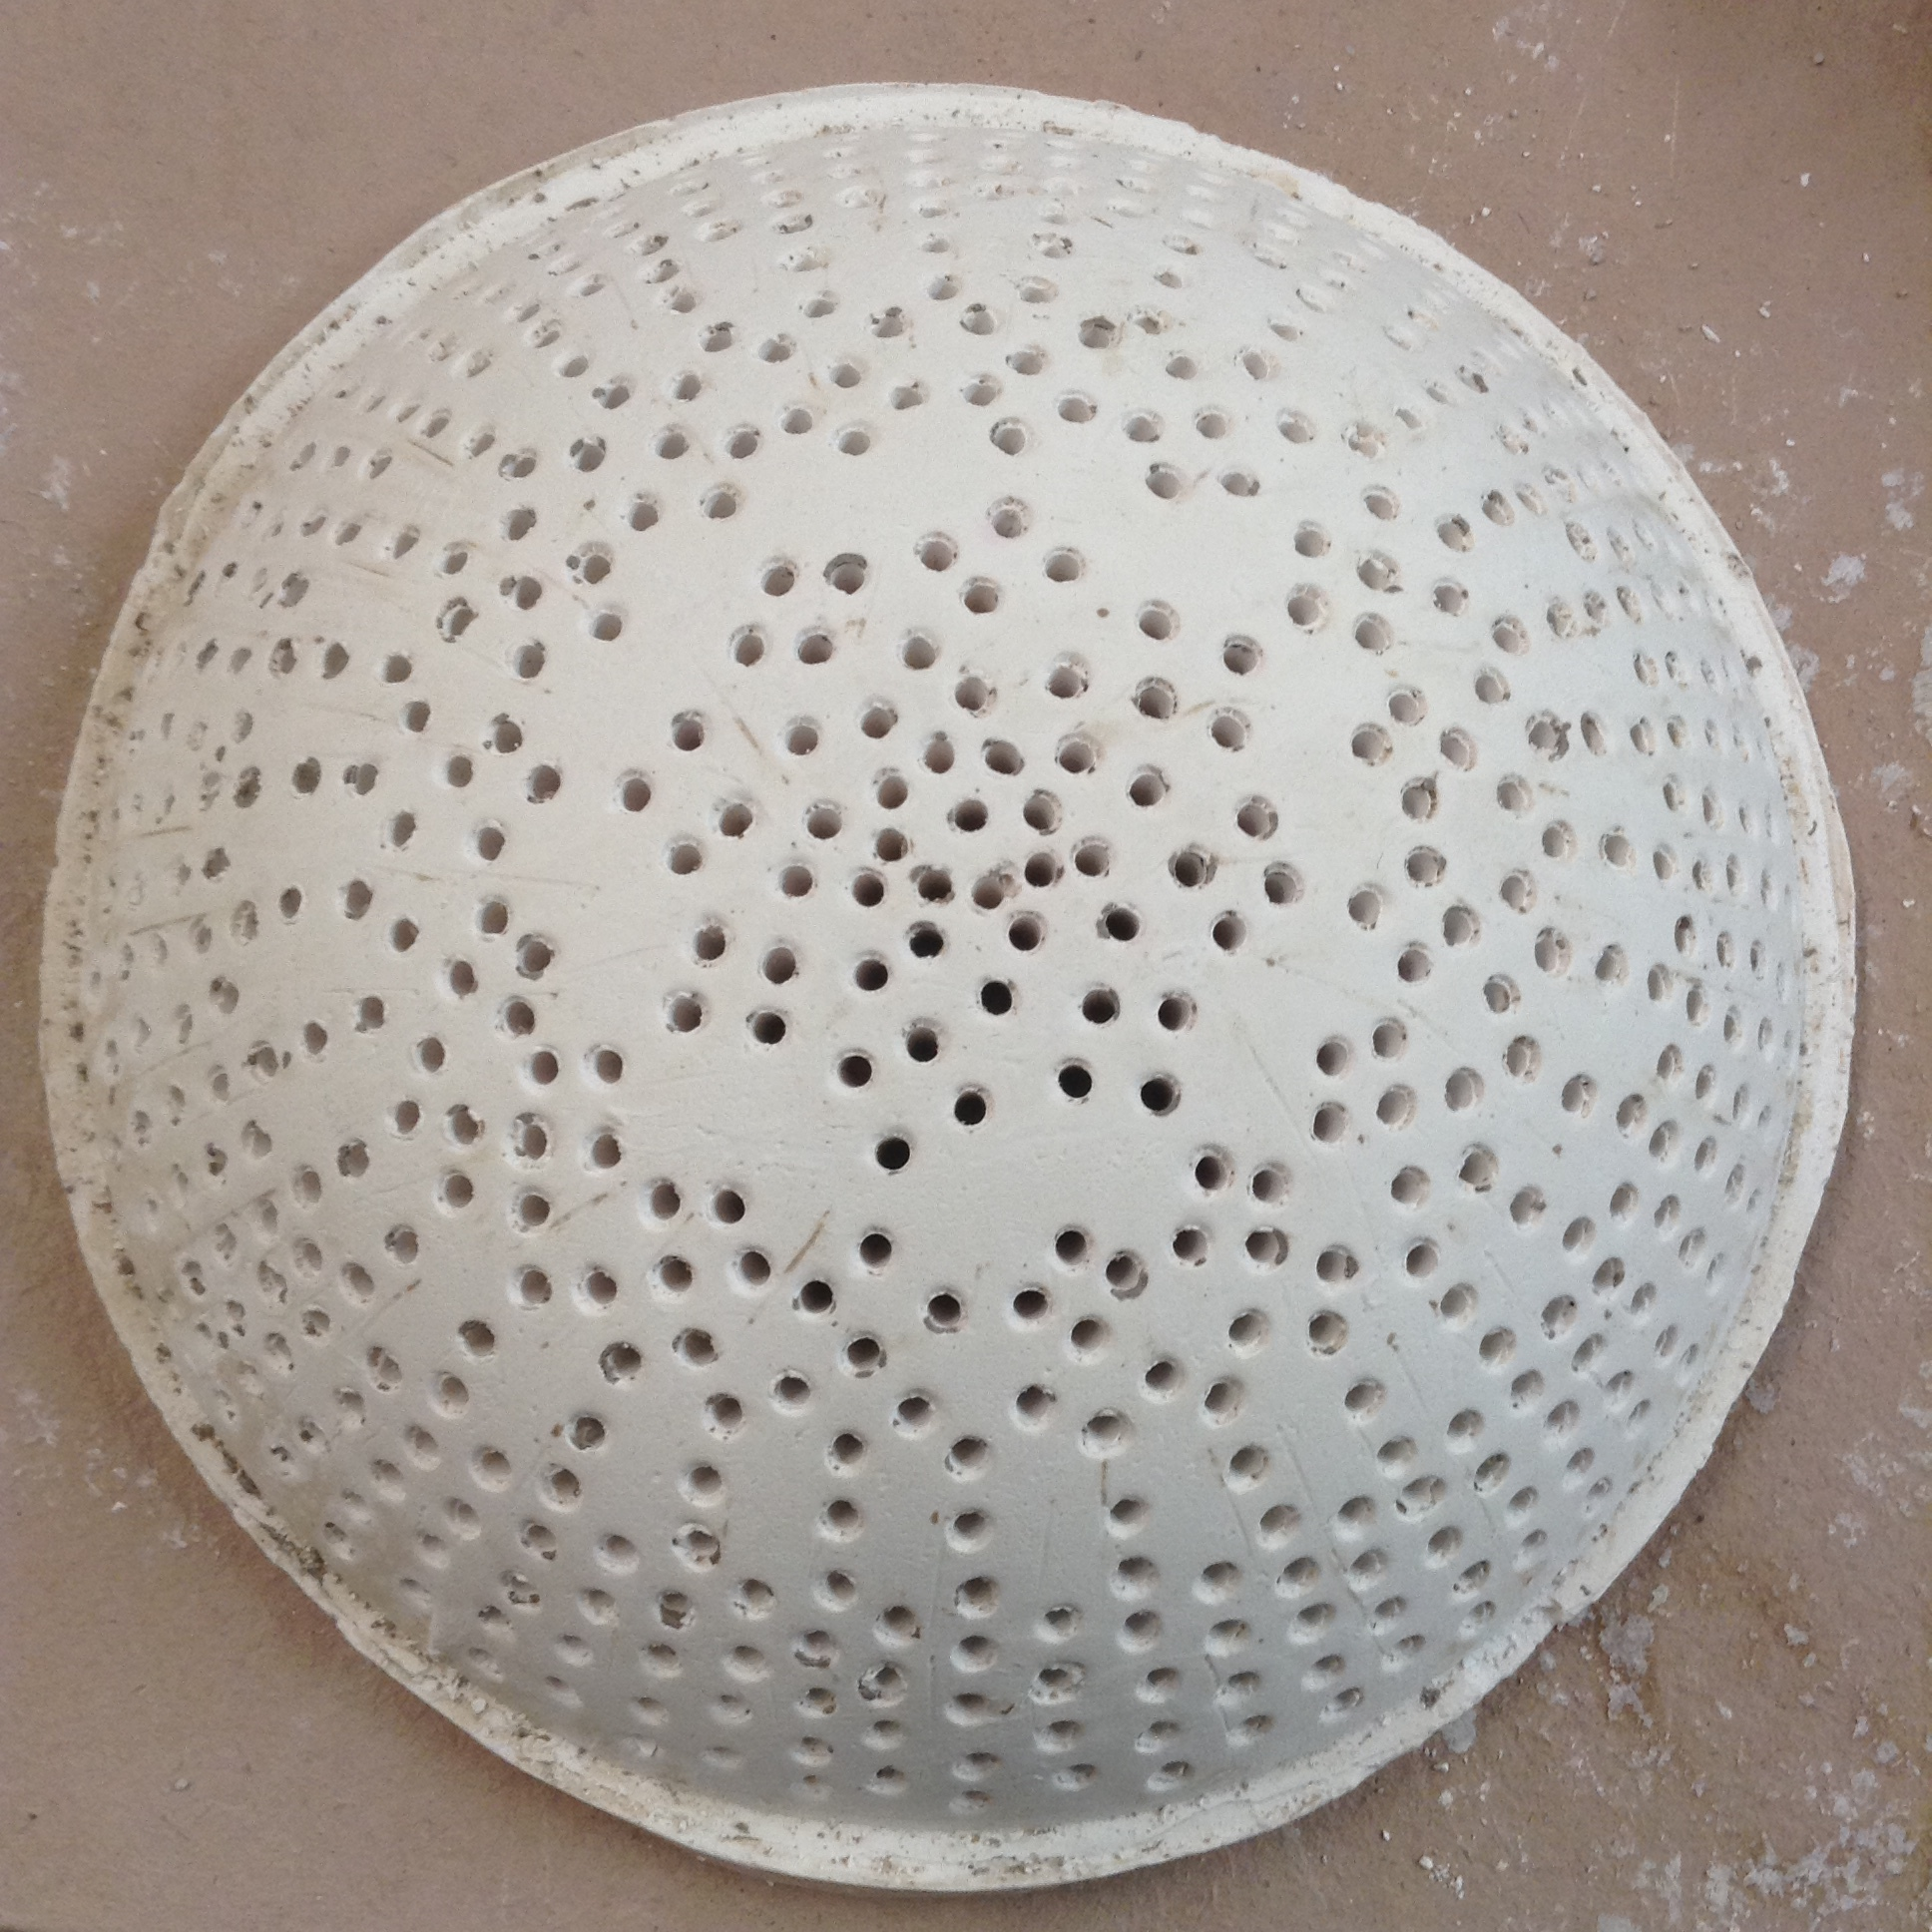 Large plaster dome form with different hole spacing in different areas.